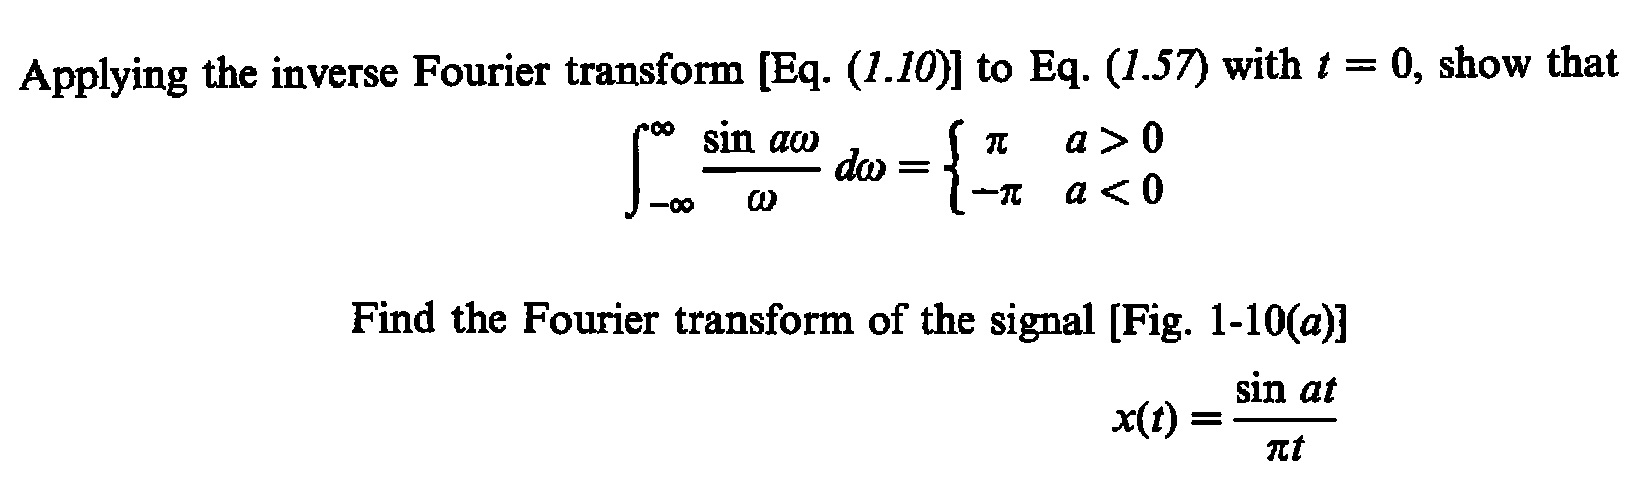 Applying the inverse Fourier transform [Eq. (1.10)